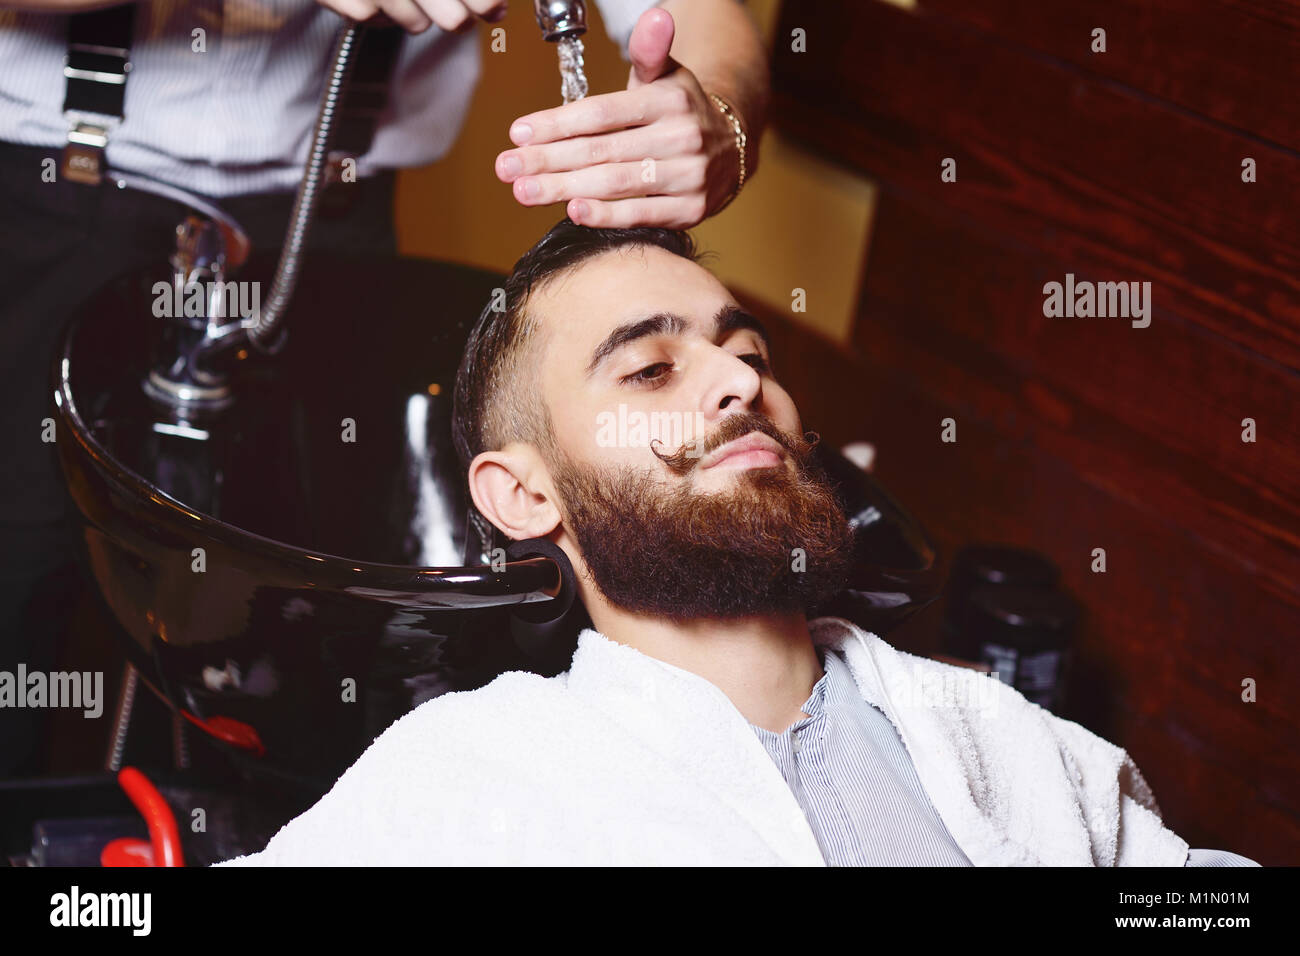 Barber or hairdresser washes the head of the client - Stock Image